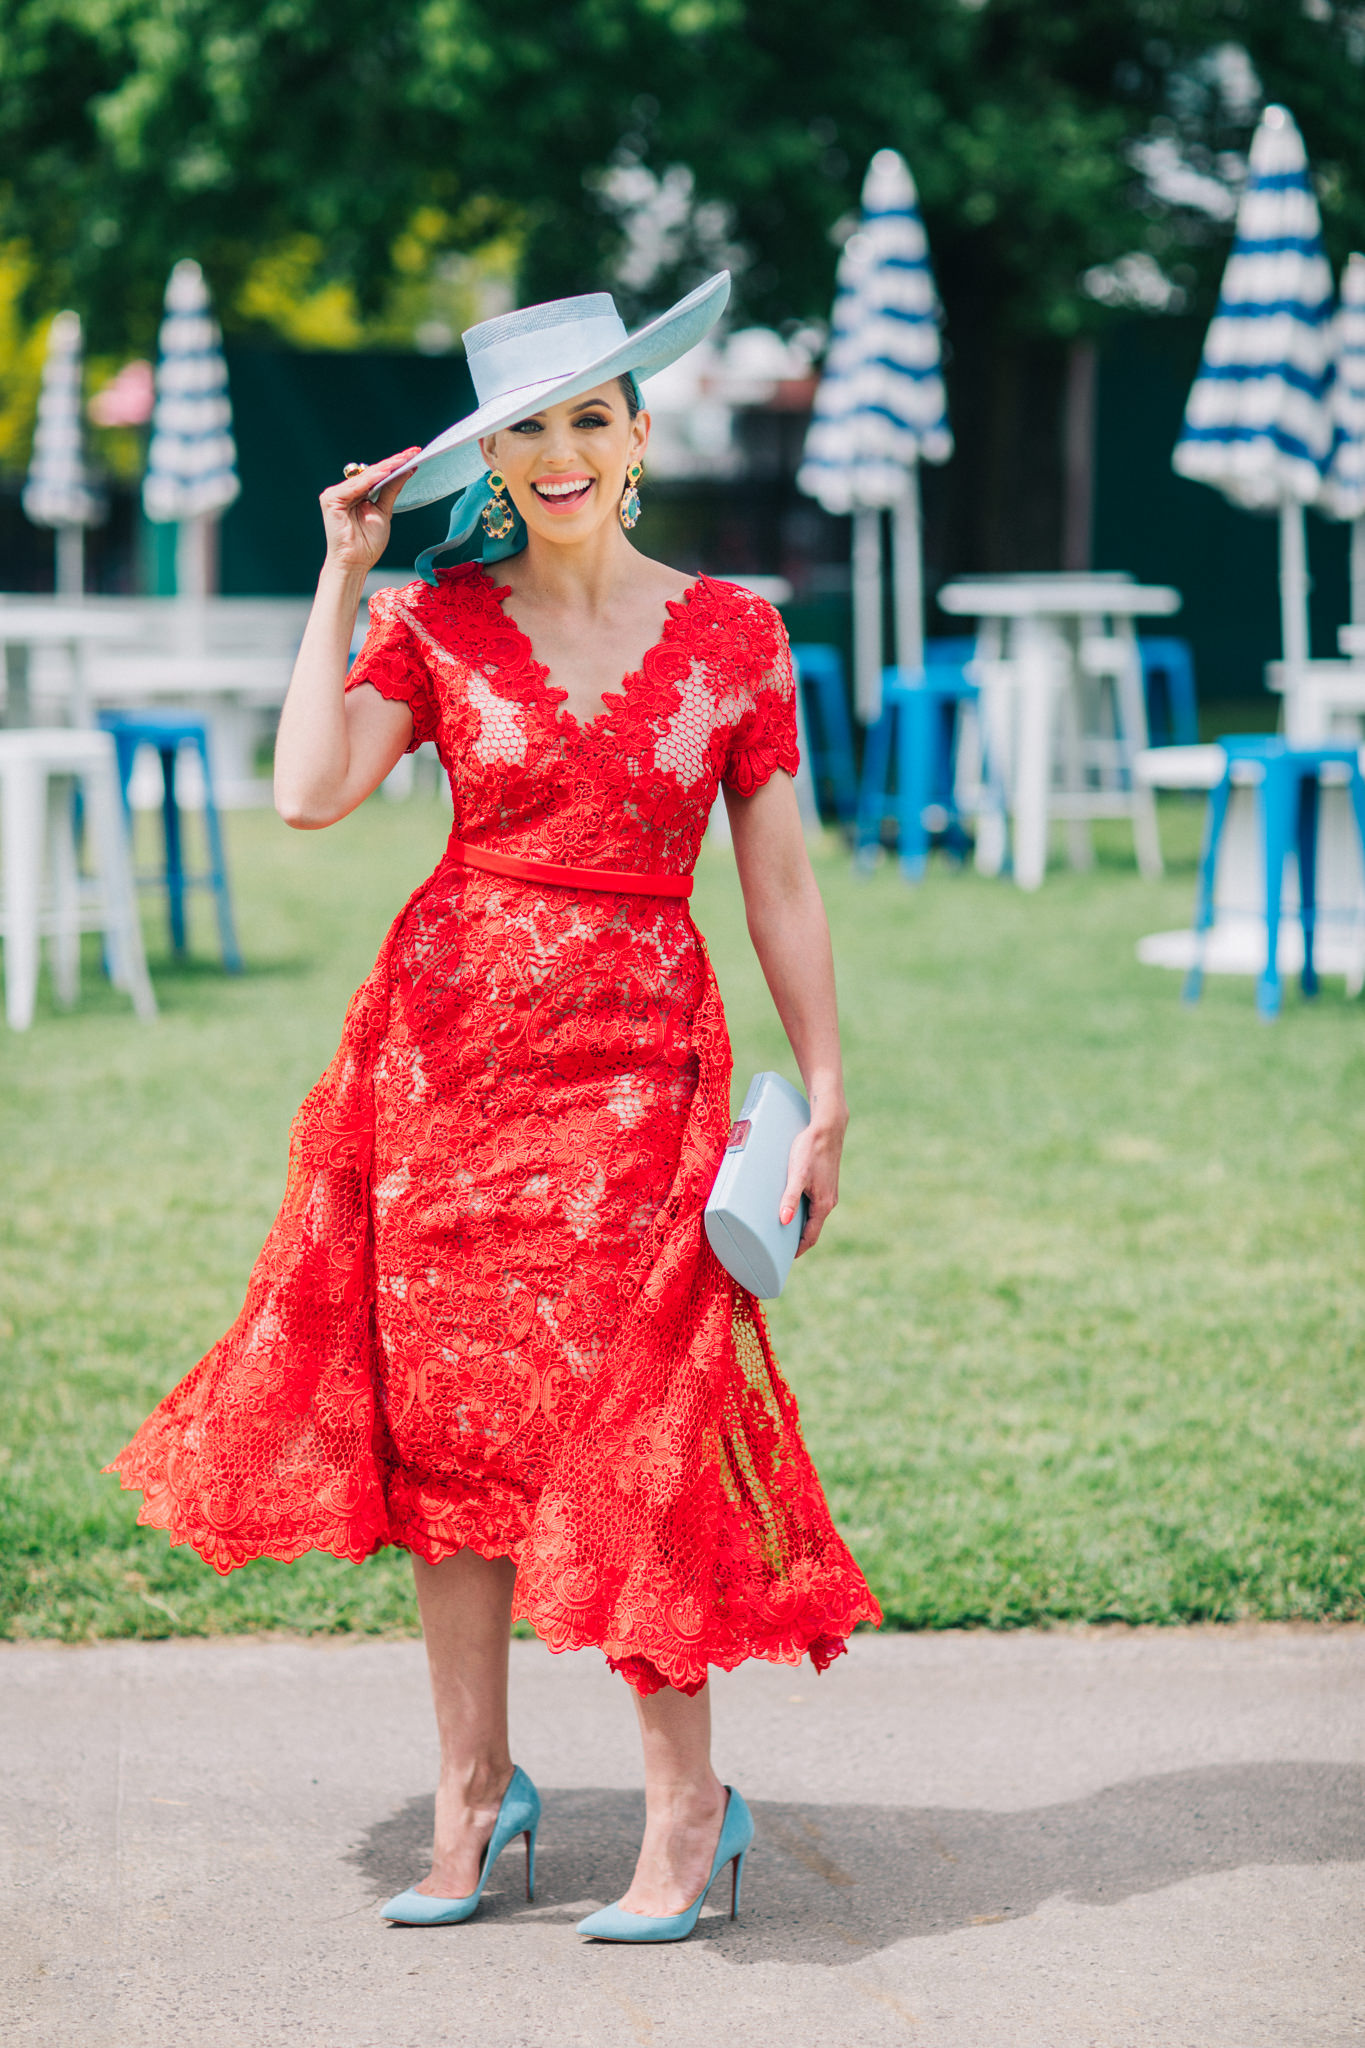 Red Lace Dress - Fashions on the Field Winner 2017